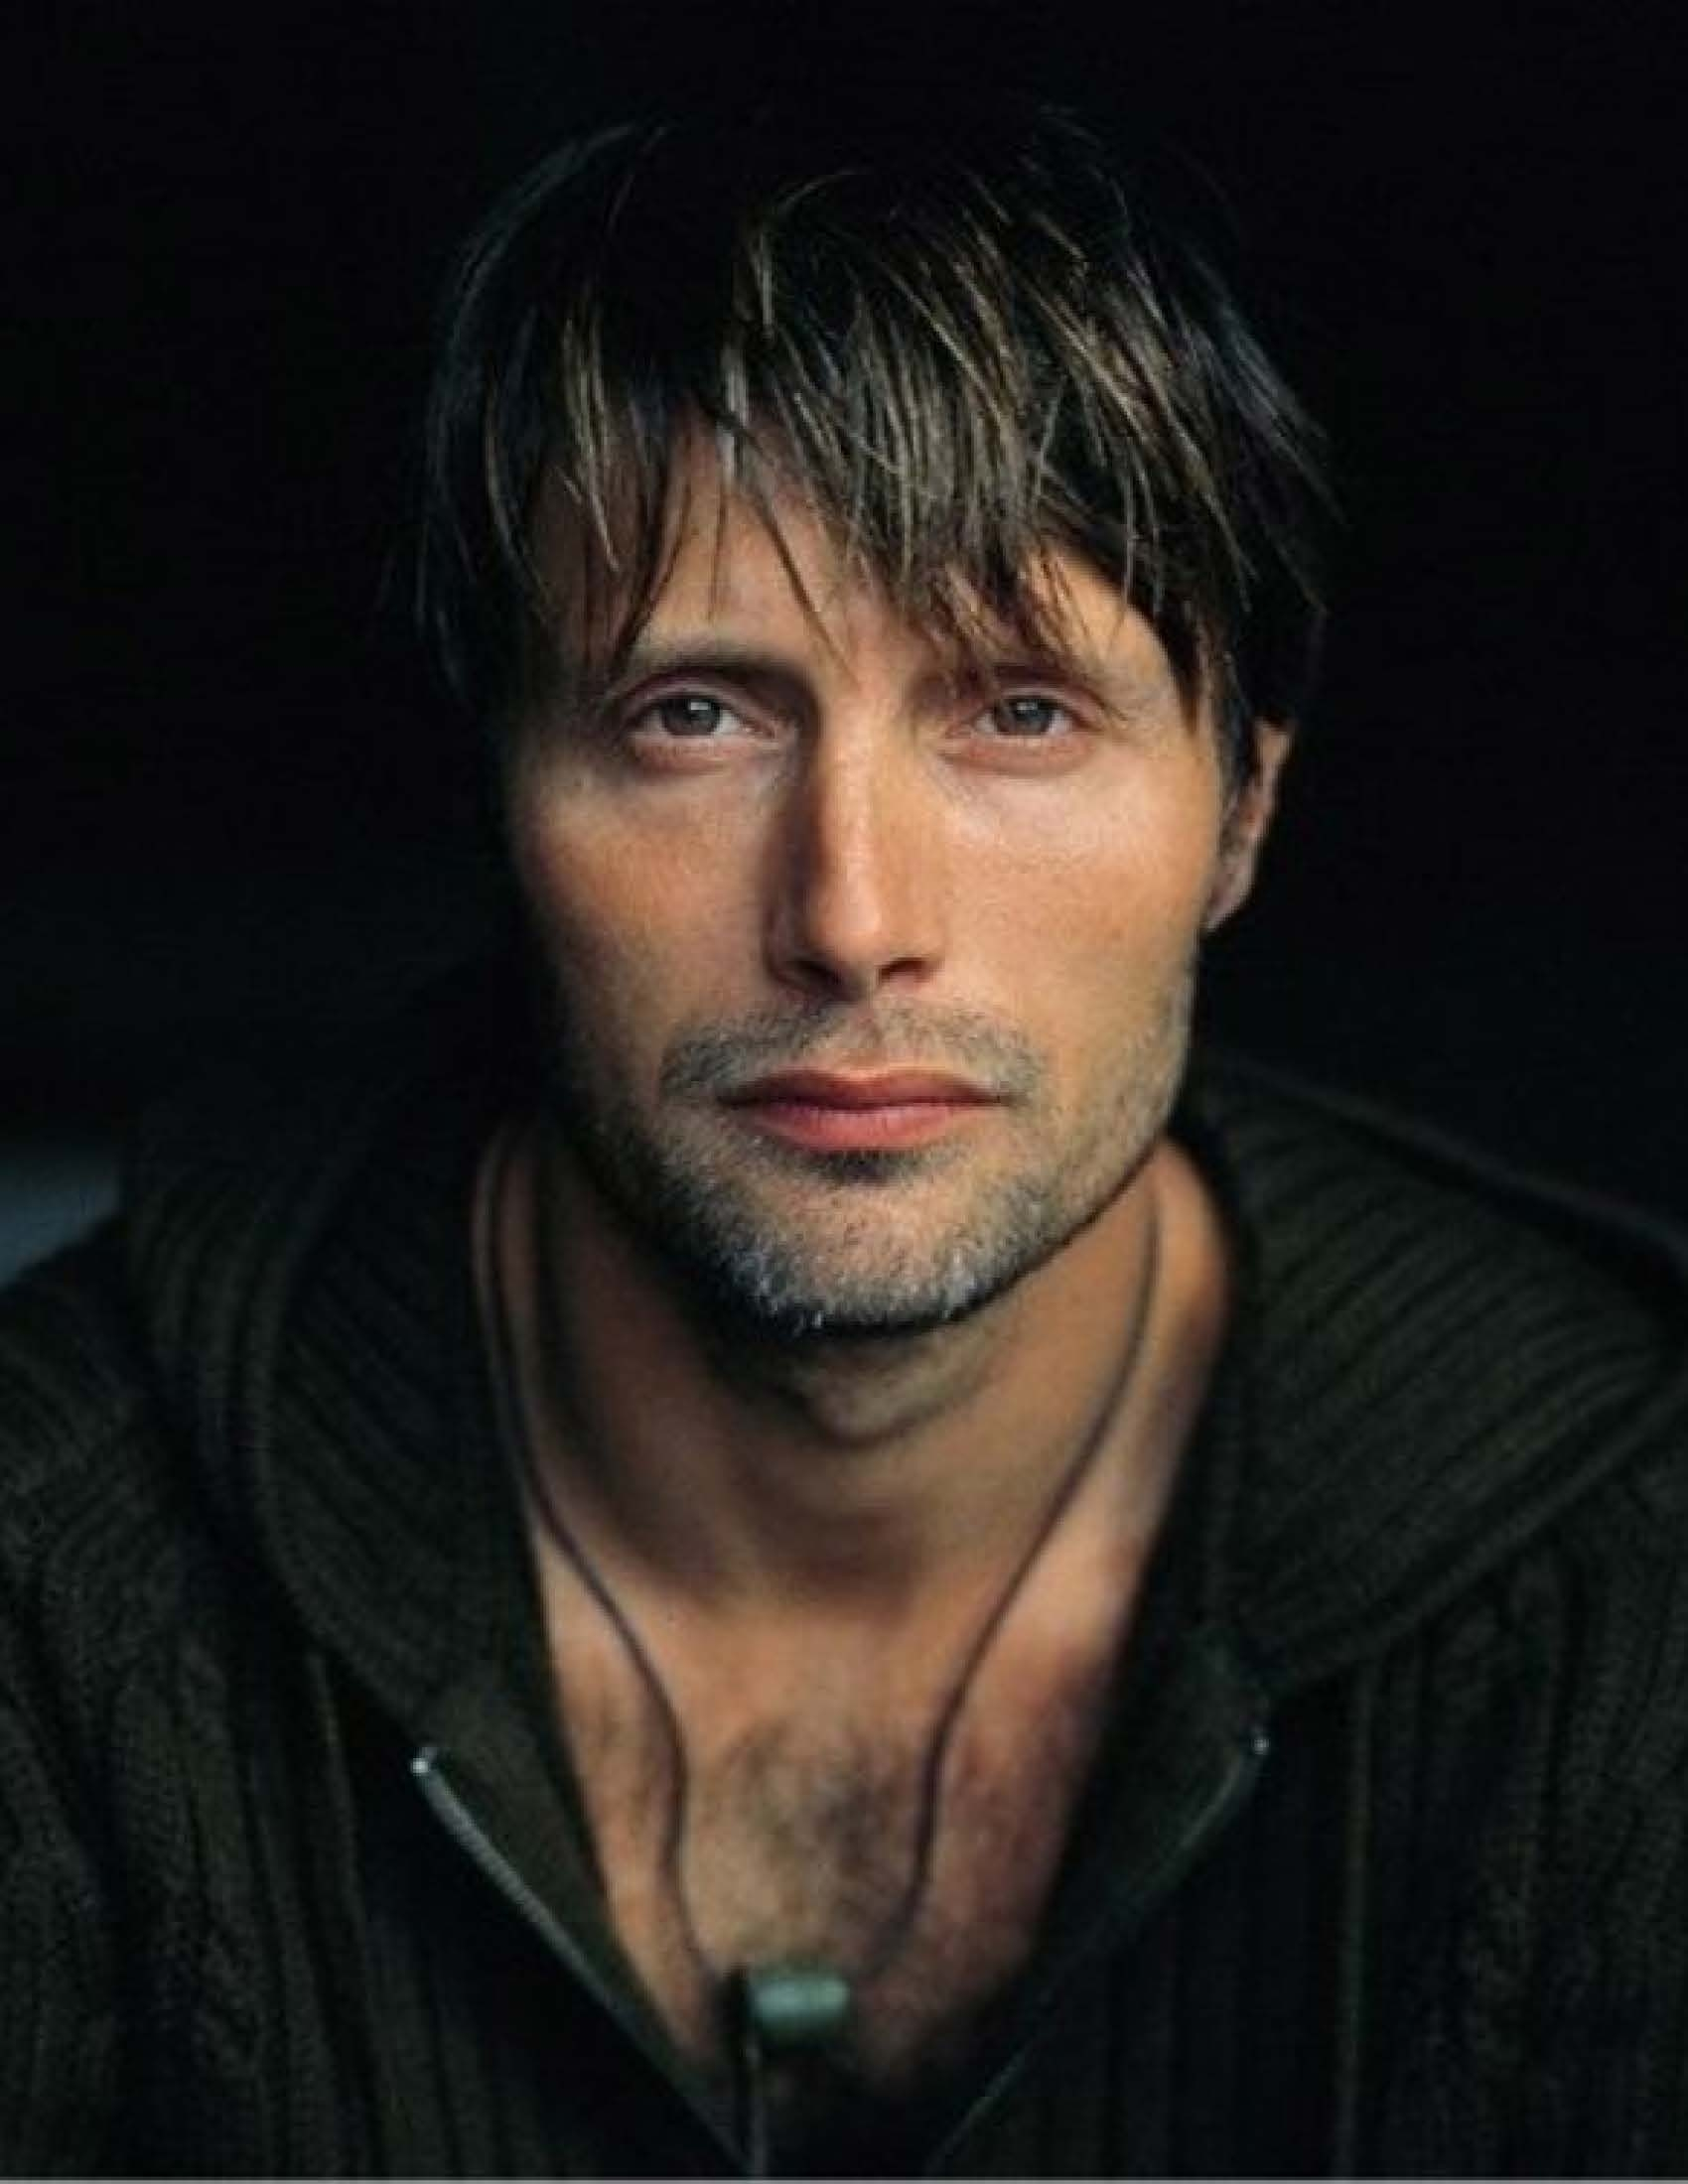 NBC taps Mads Mikkelsen to play Hannibal Lecter in new series